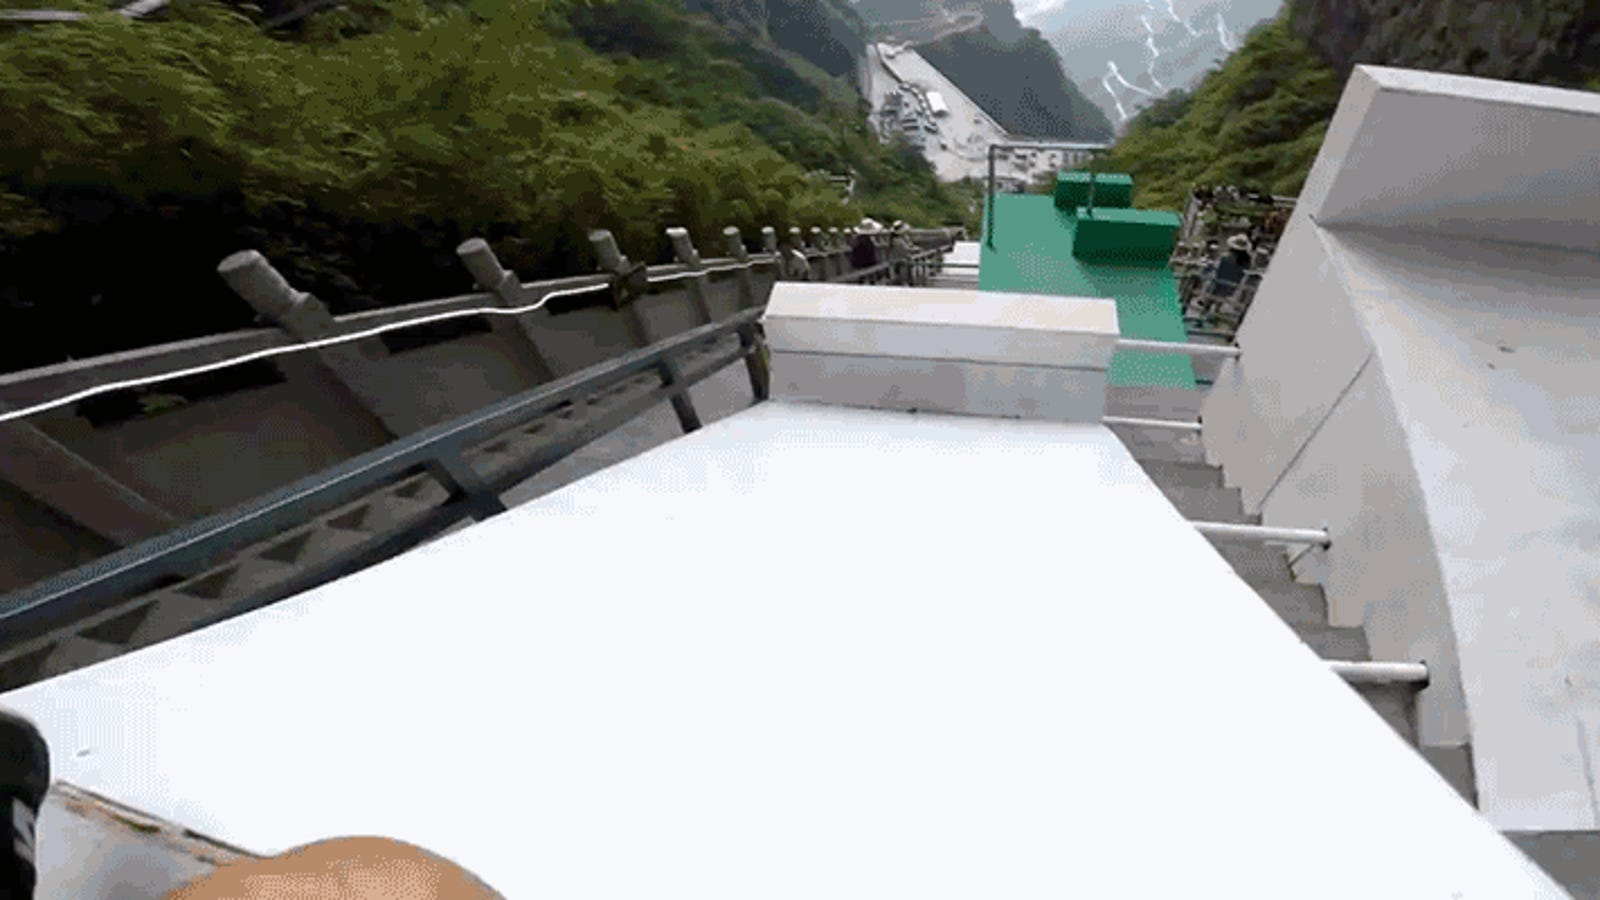 Count How Many Times You'd Break Your Ankle on This Crazy Steep Downhill Mountain Parkour Run